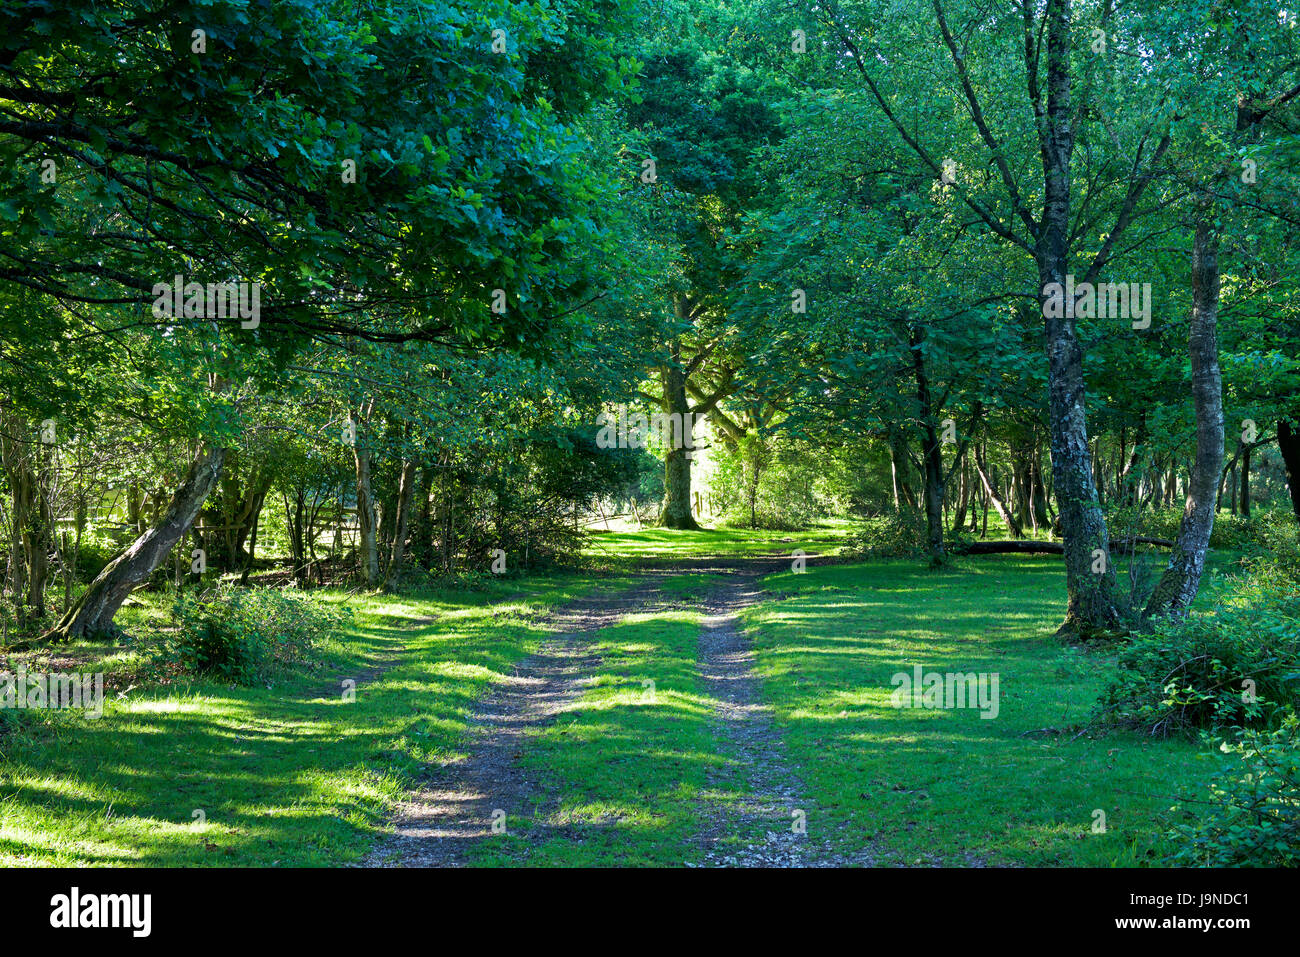 Hale Purlieu, woodland walk in the New Forest, Hampshire, England UK - Stock Image